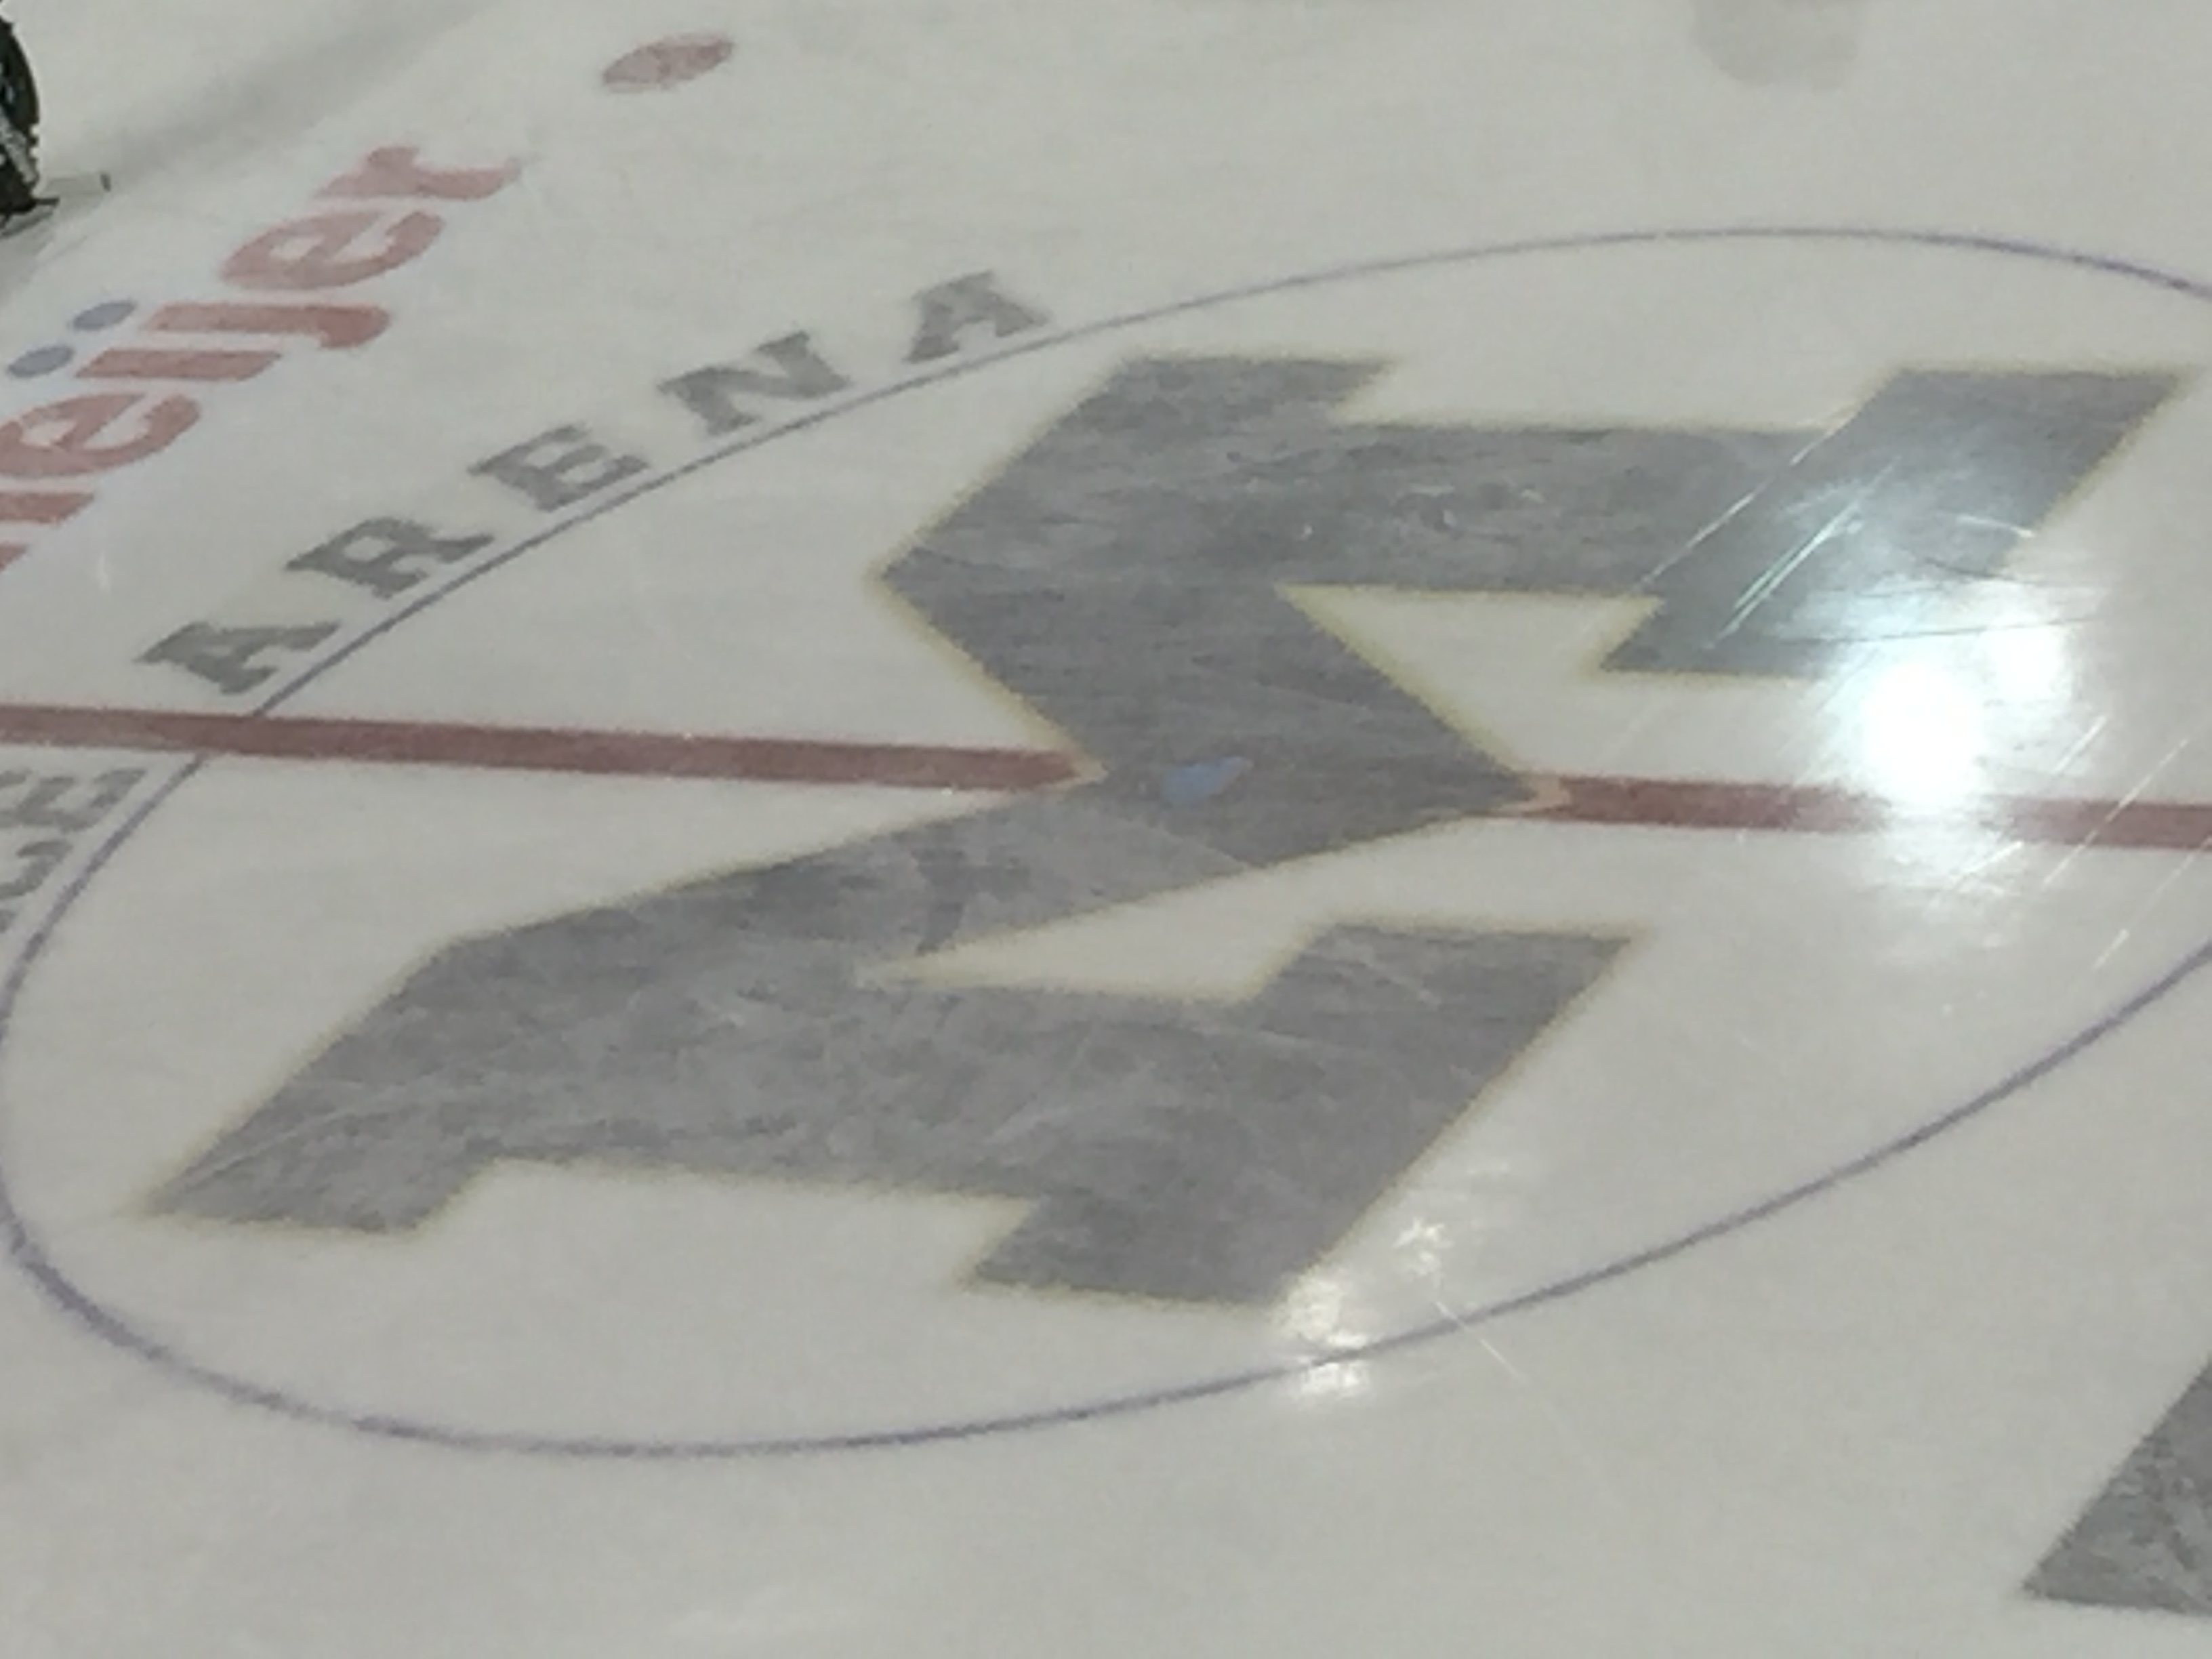 Two late period goals end Michigan's season in 5-2 loss to North Dakota